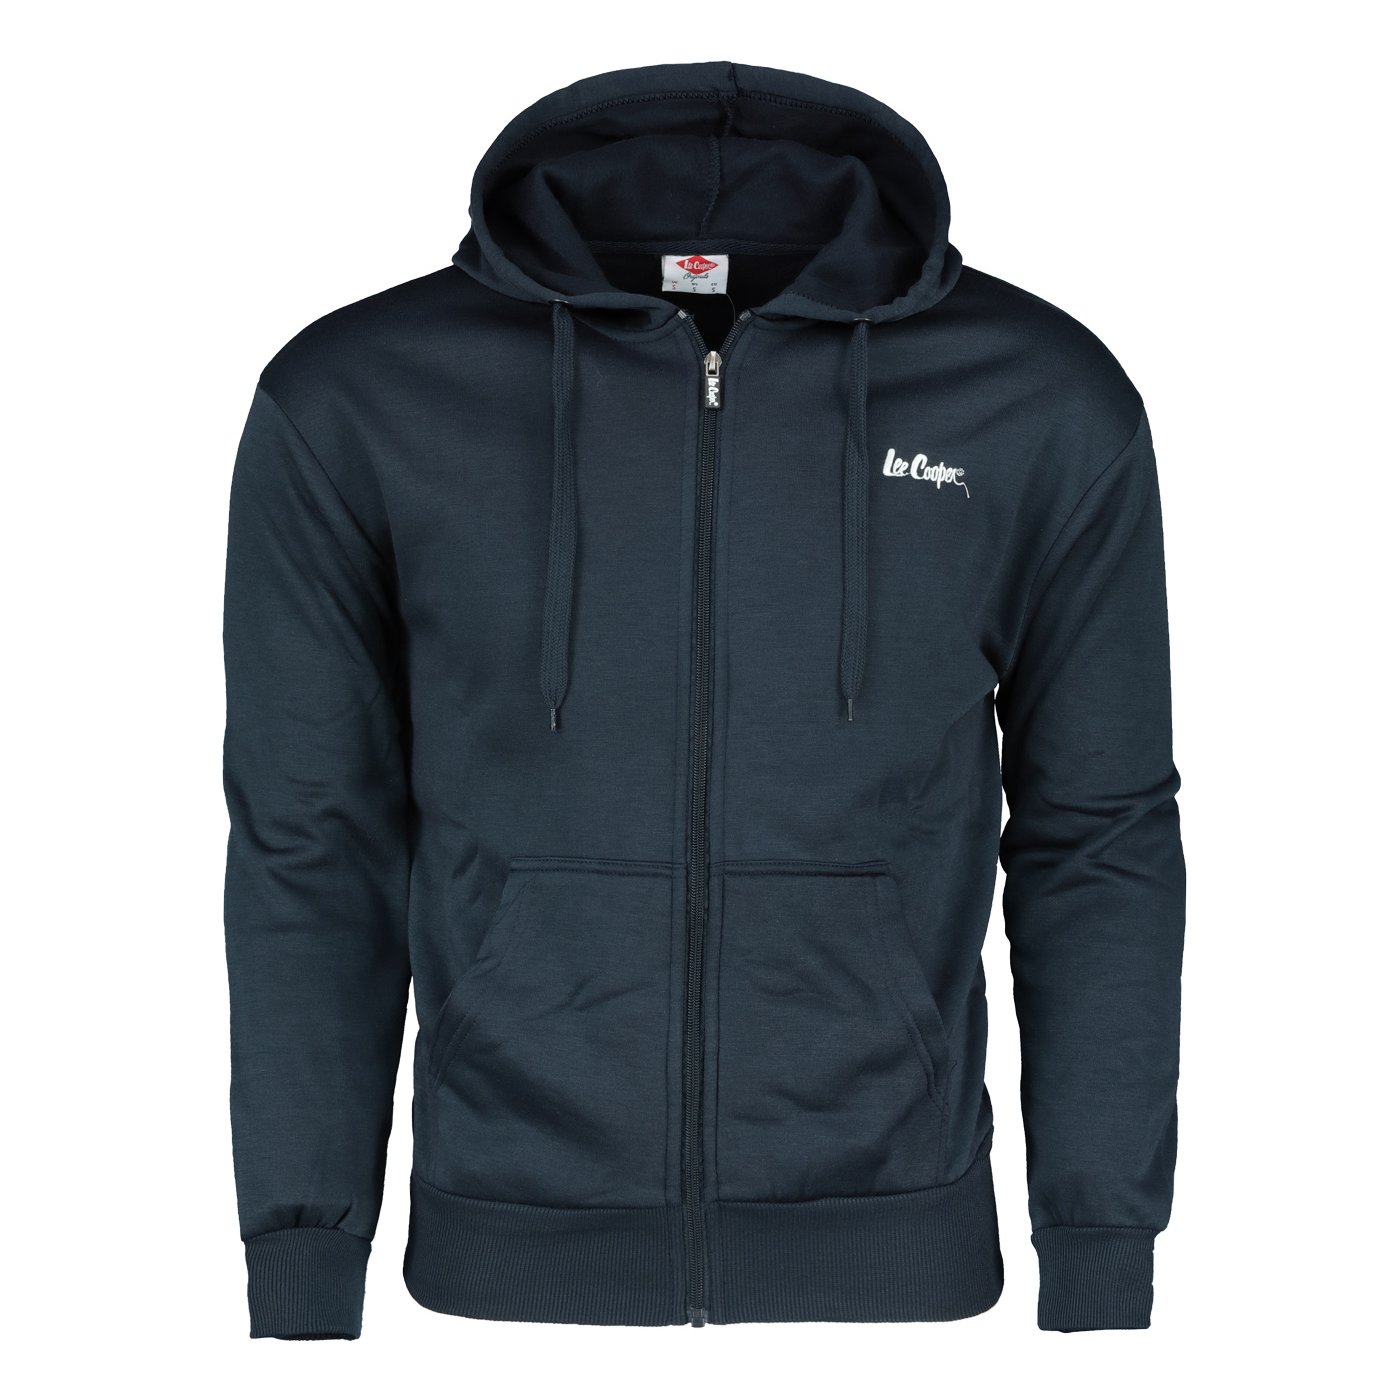 0d2d11528f Lee Cooper Full Zip Hoody Mens - FACTCOOL